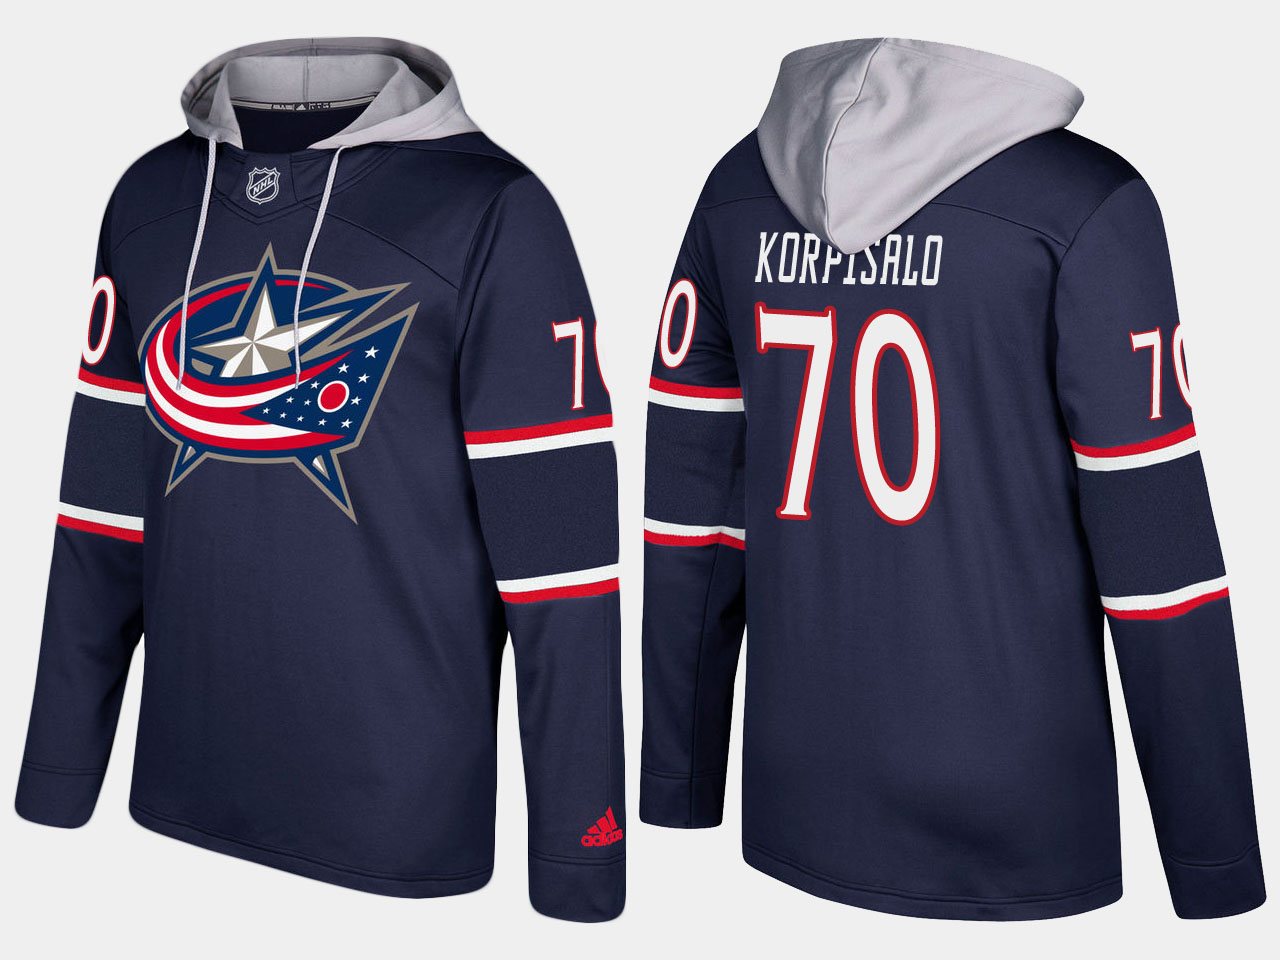 Men NHL Columbus blue jackets 70 joonas korpisalo navy blue hoodie